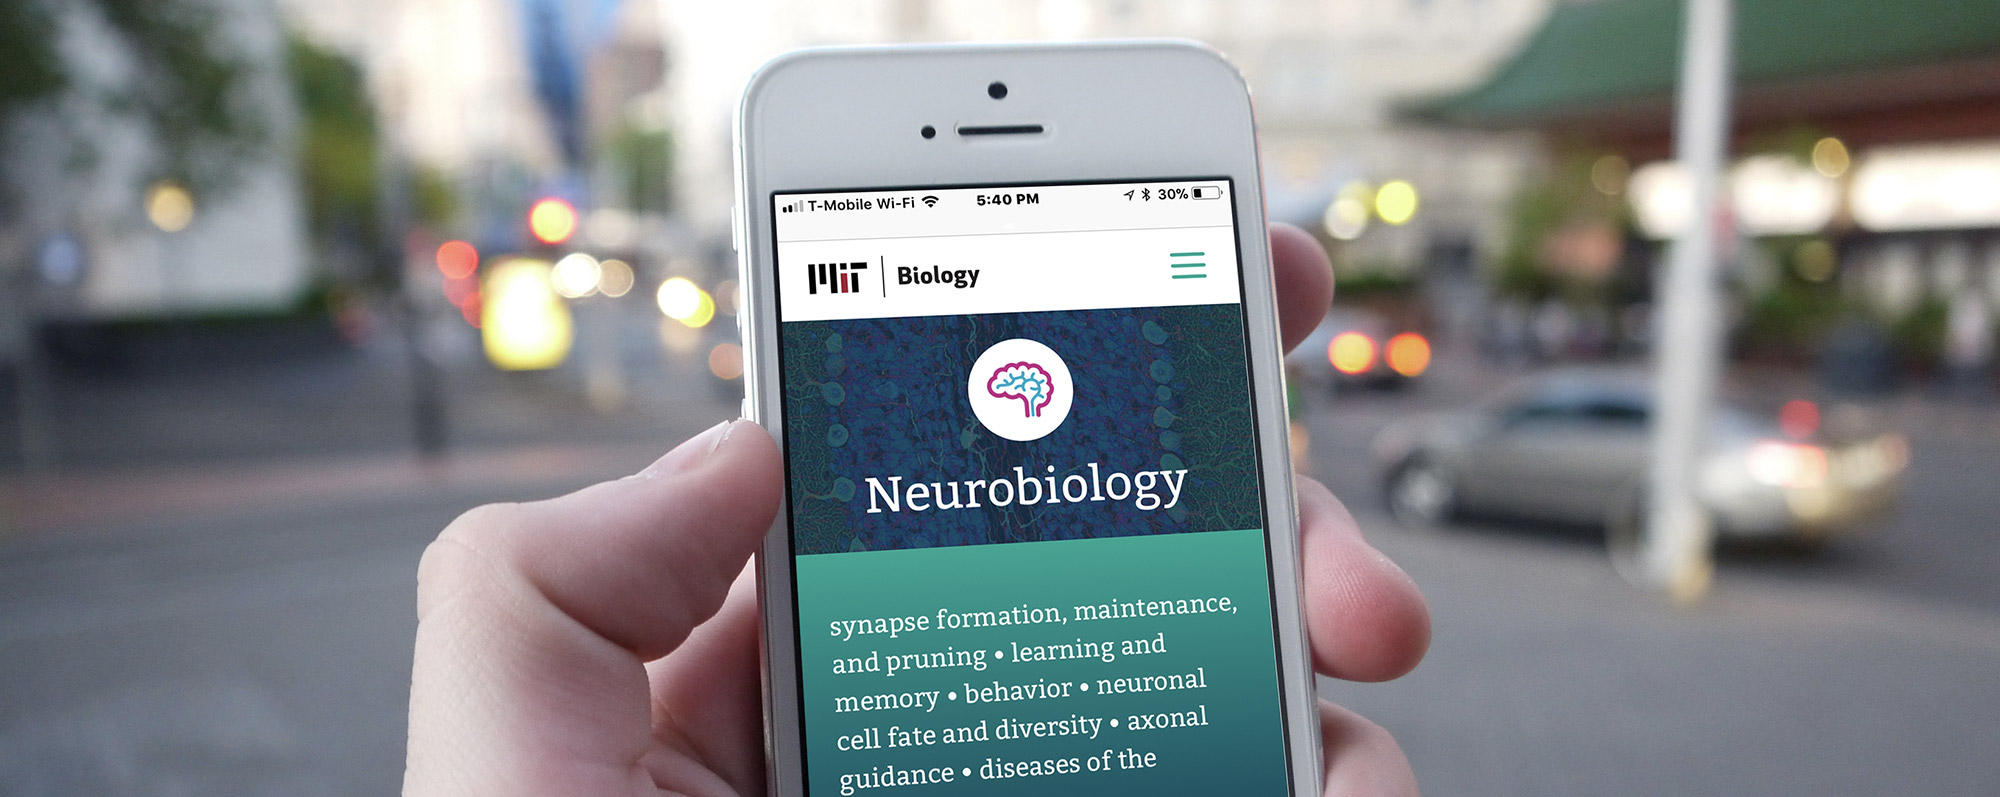 MIT Biology website